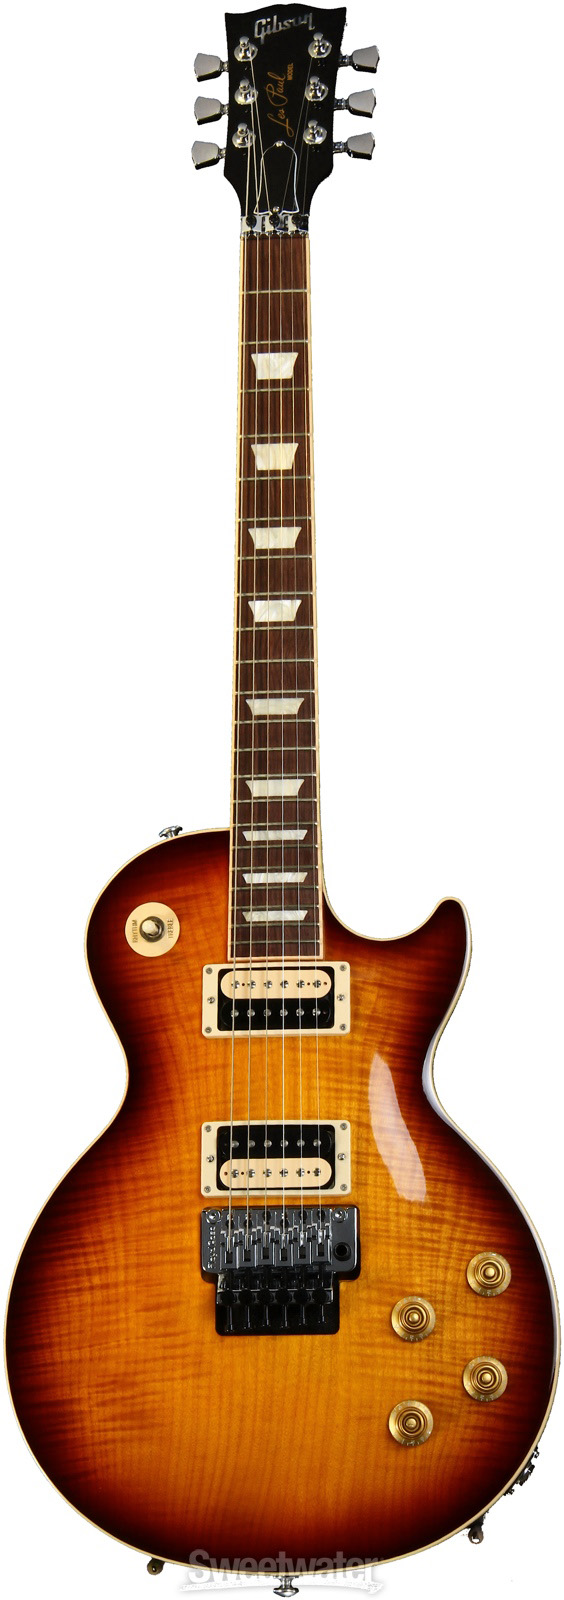 Gibson les paul traditional pro ii floyd rose gibson les paul les paul traditional pro ii floyd rose 001 pion cheapraybanclubmaster Image collections